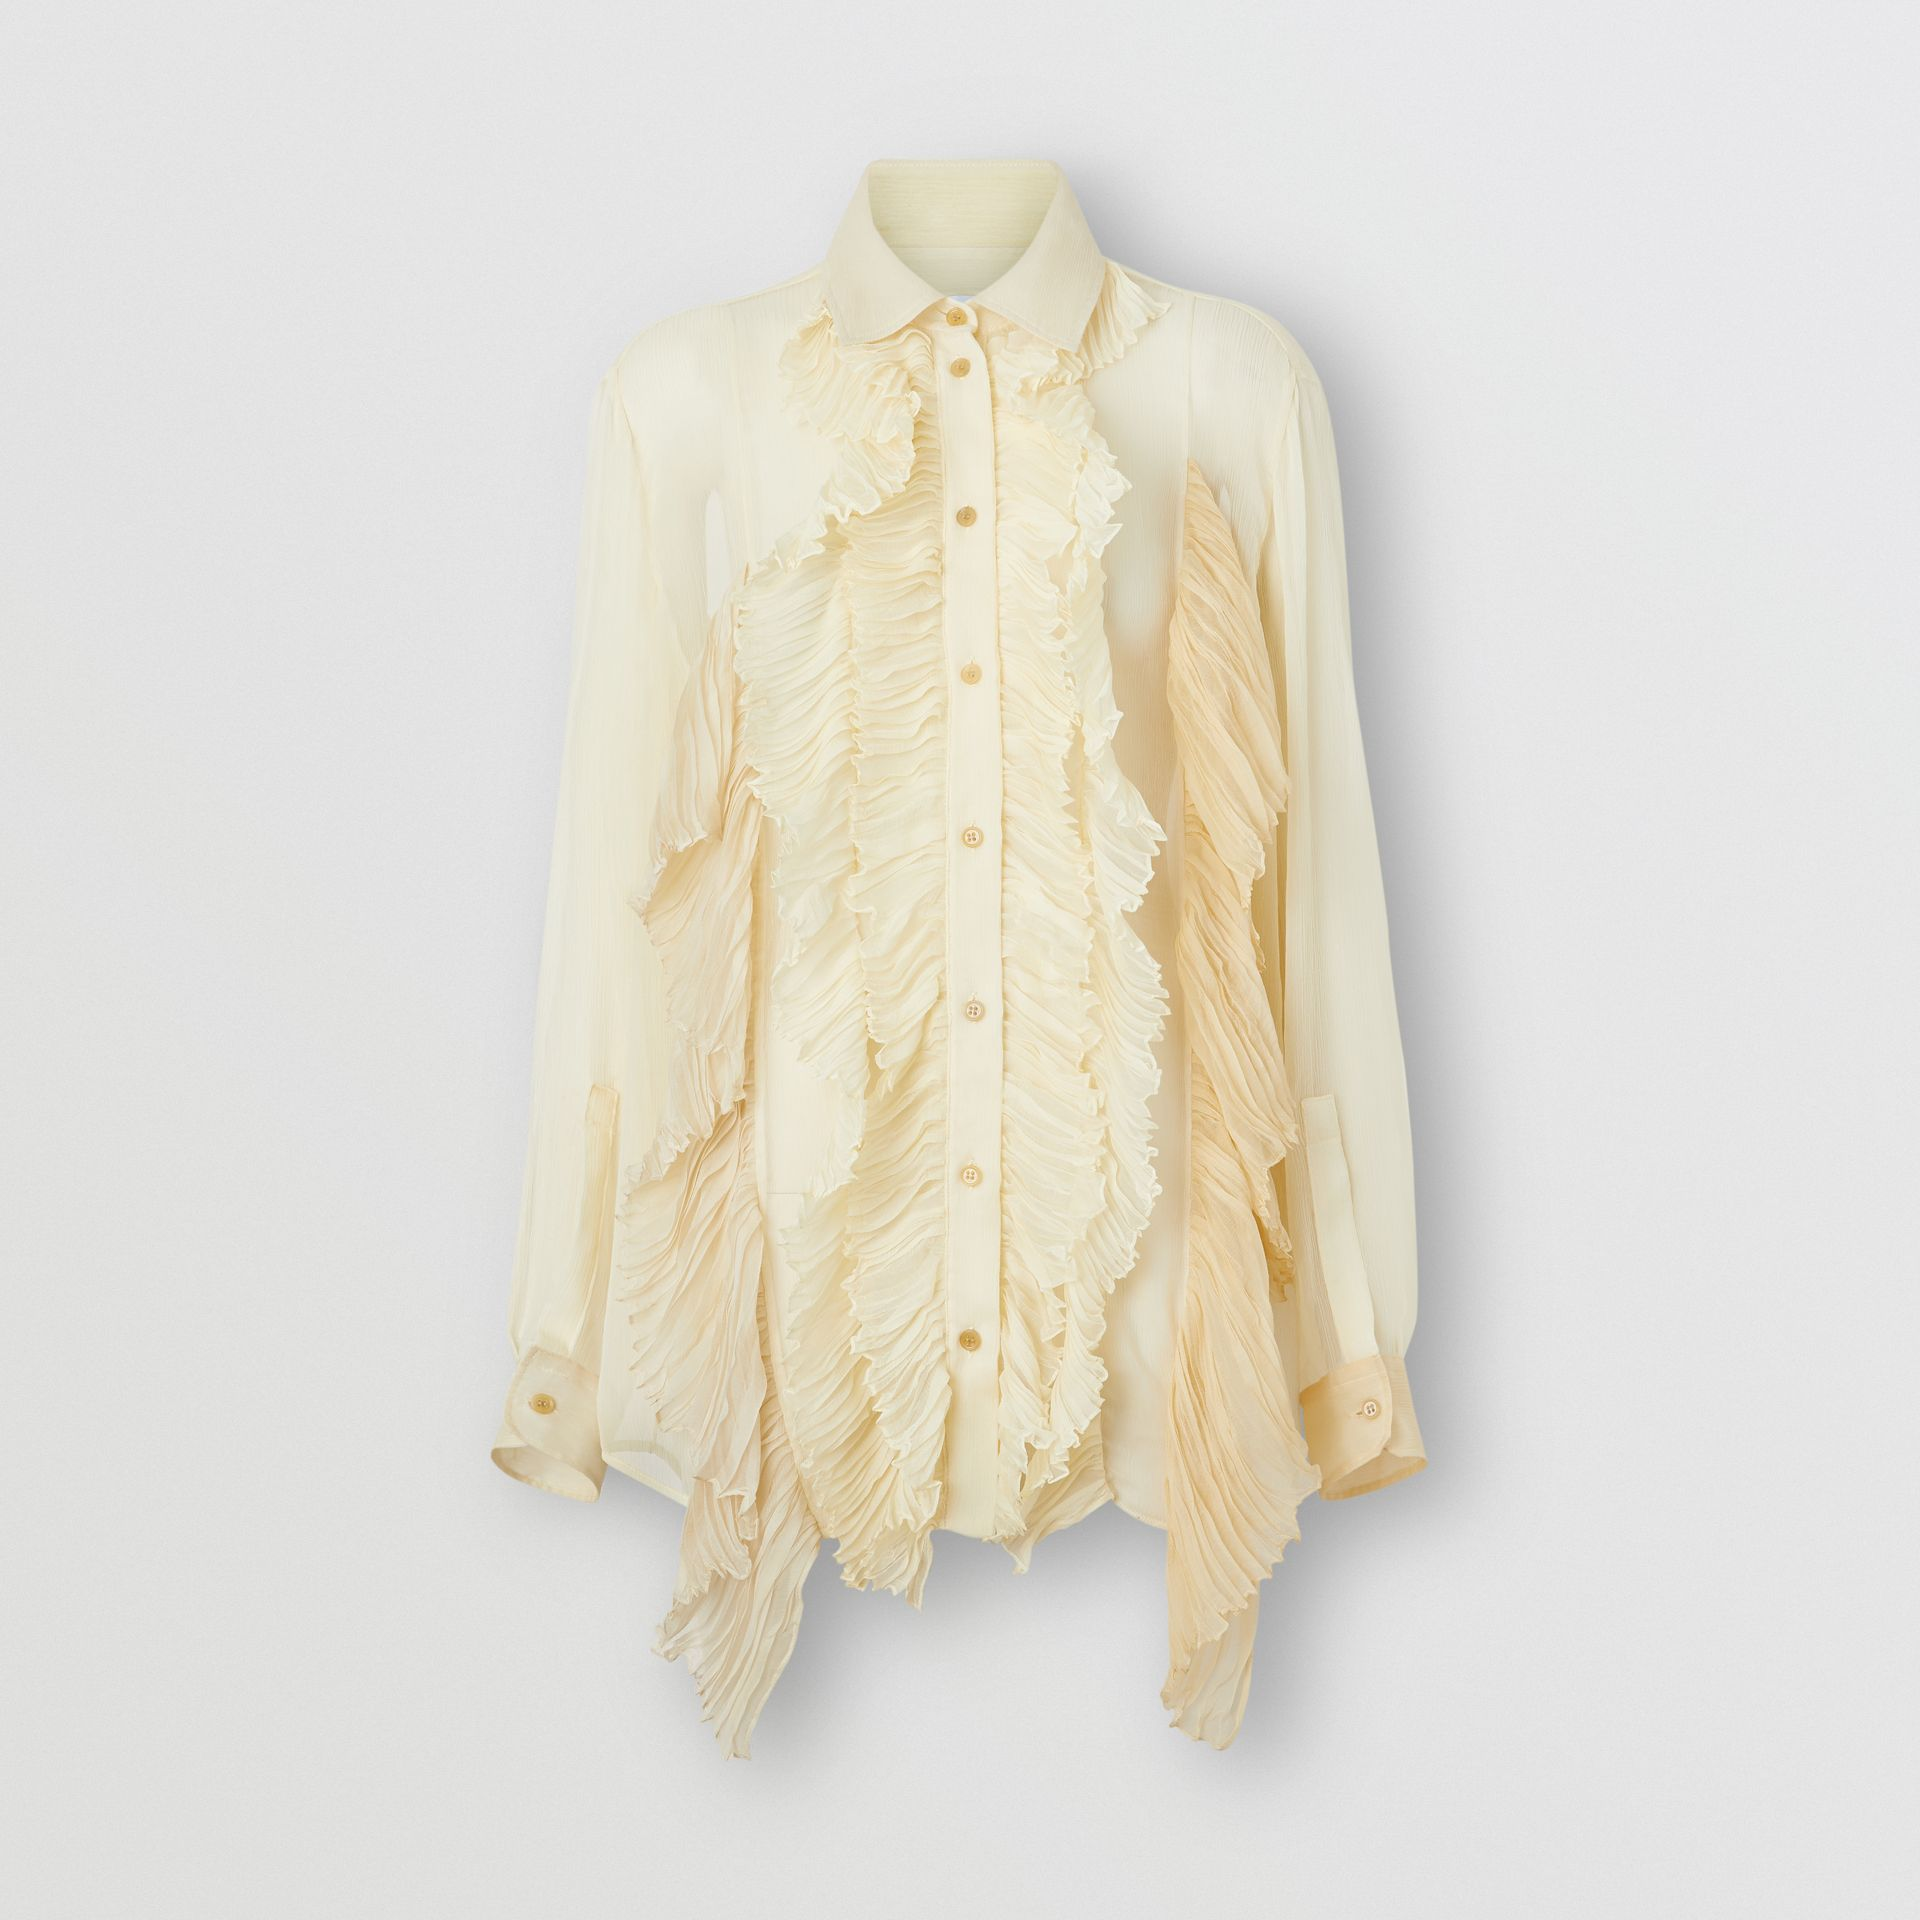 Ruffle Detail Crepe De Chine Oversized Blouse in Light Oatmeal - Women | Burberry - gallery image 3